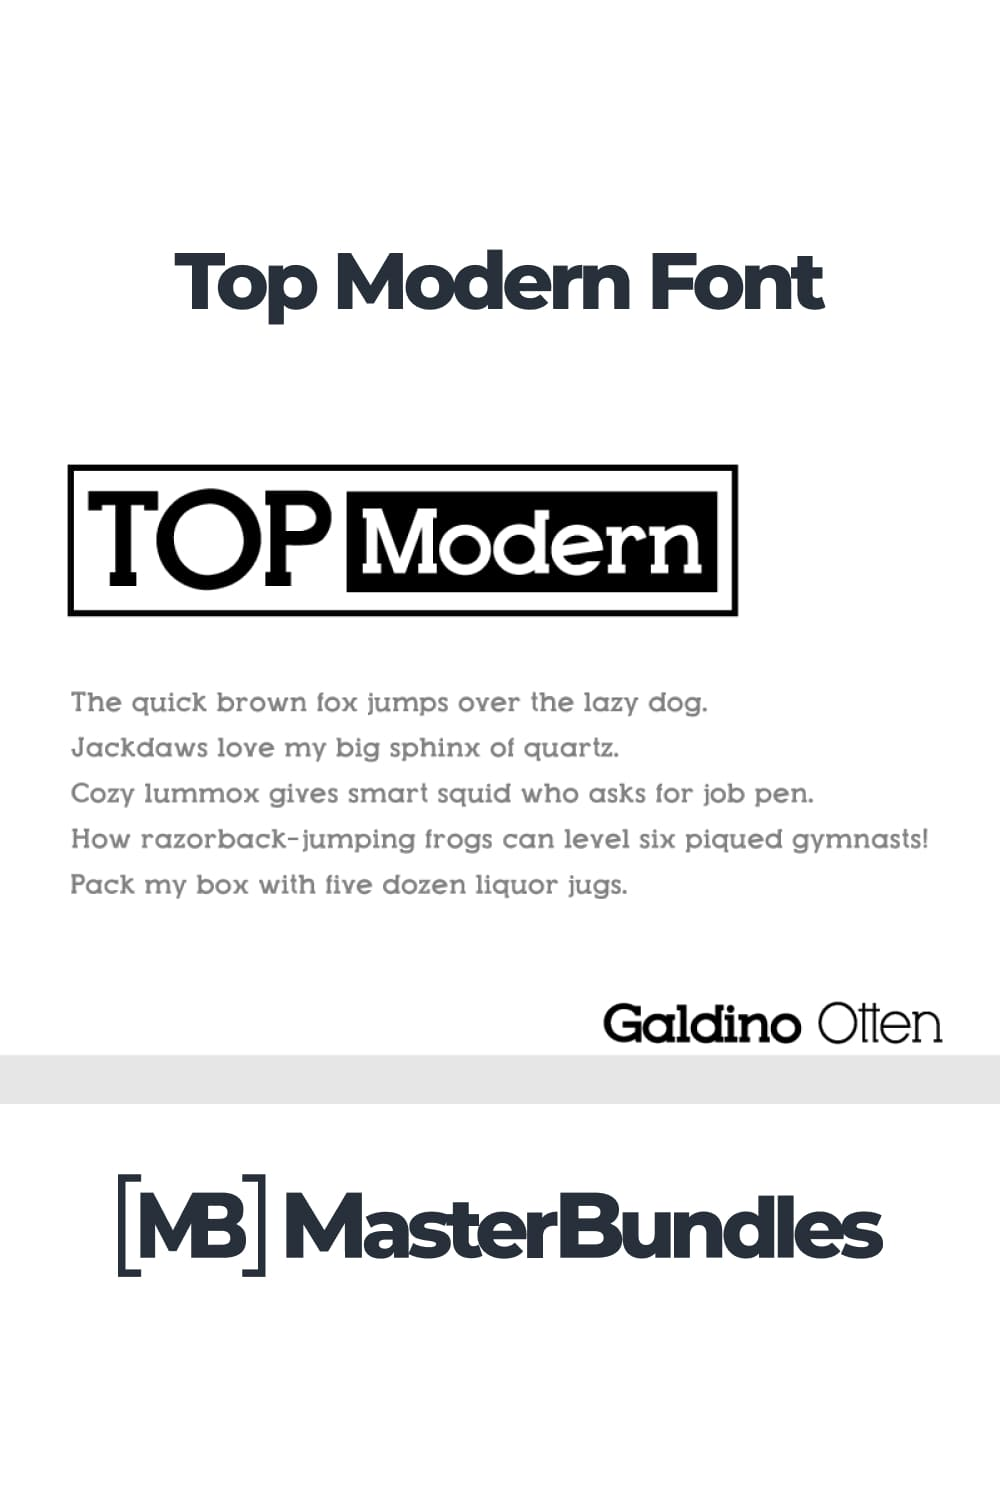 Black and white font with a stylish magazine effect.